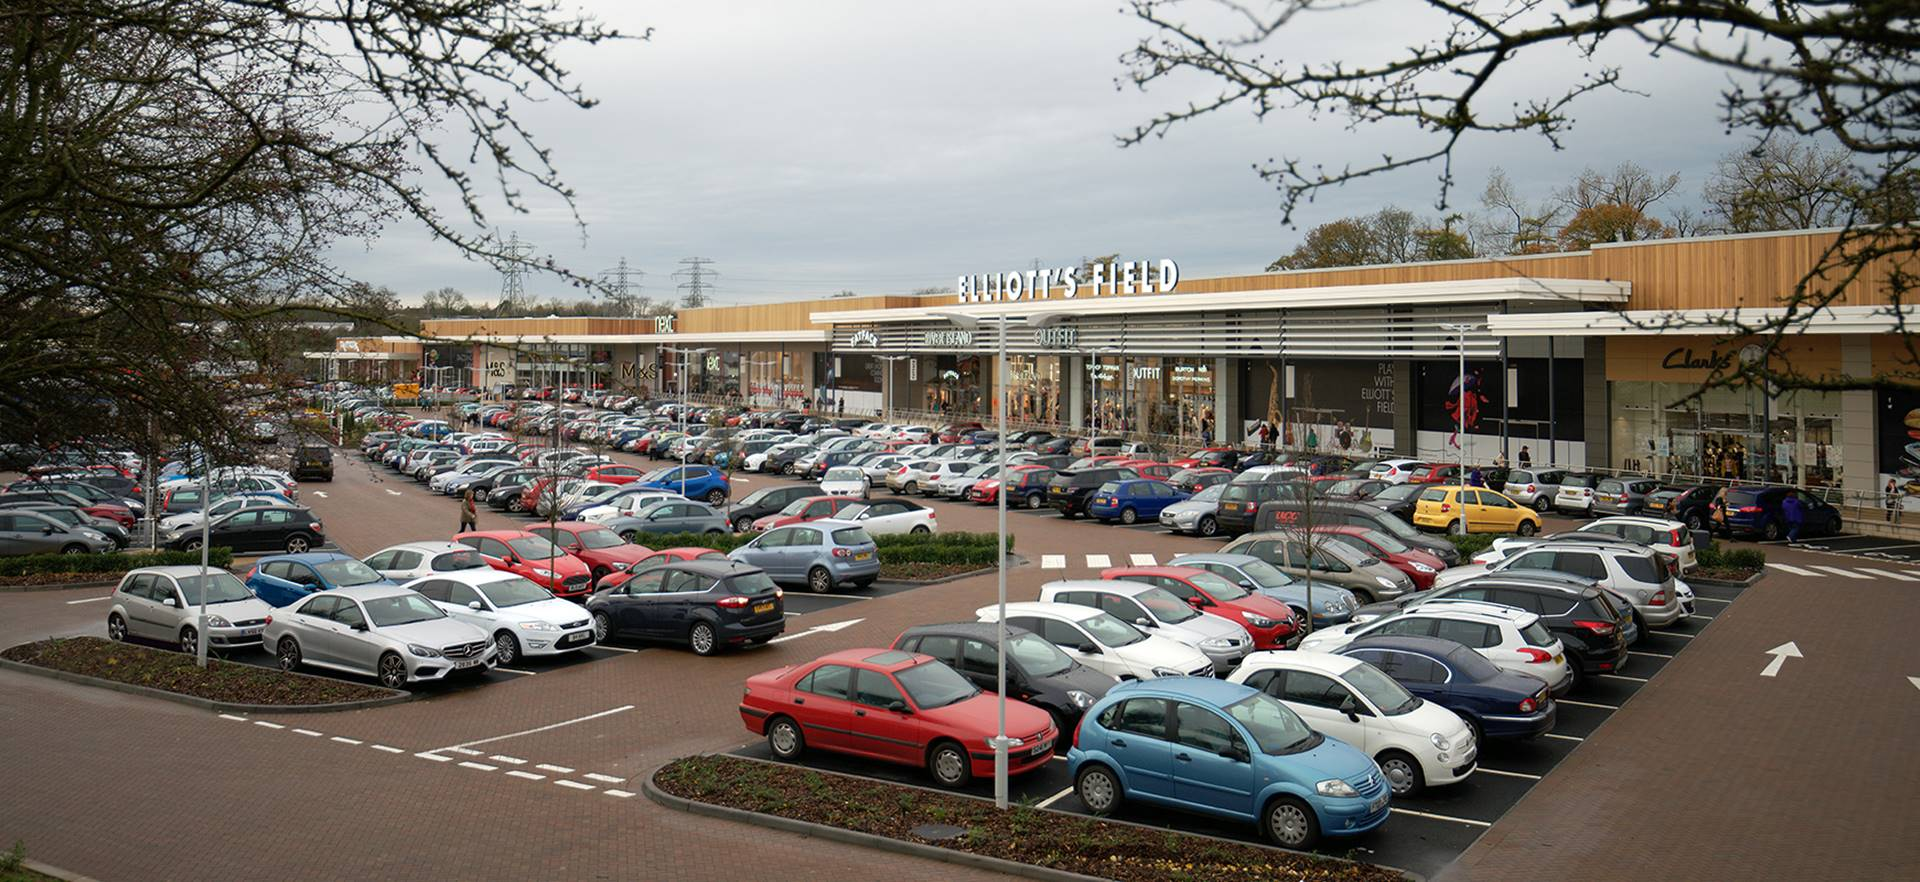 Elliott's Field Shopping Park, Rugby